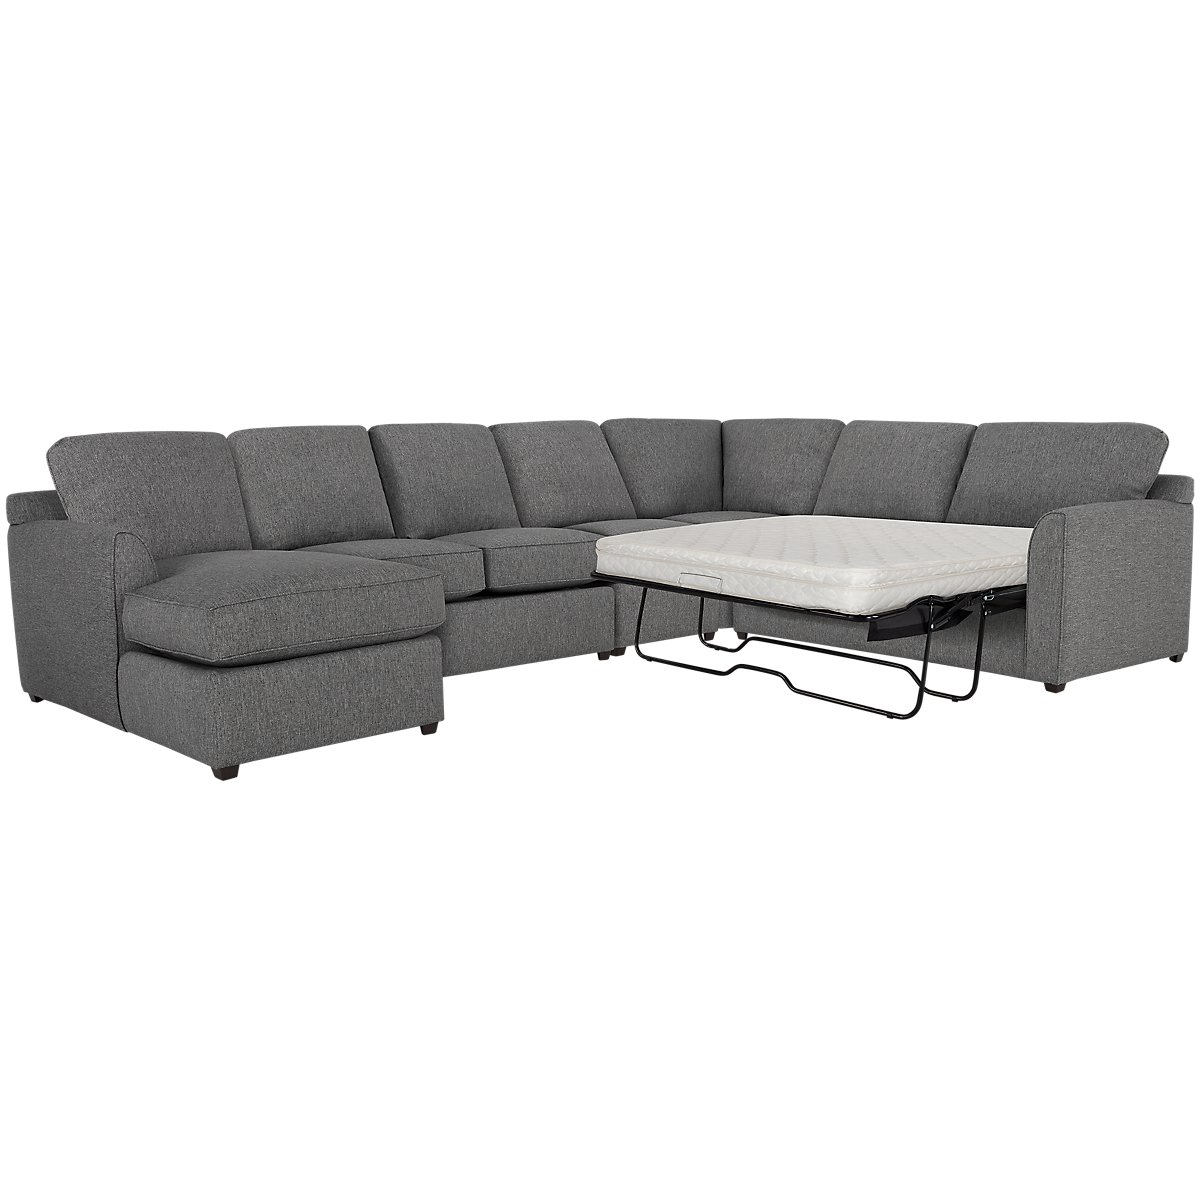 Asheville Gray Fabric Left Chaise Innerspring Sleeper Sectional